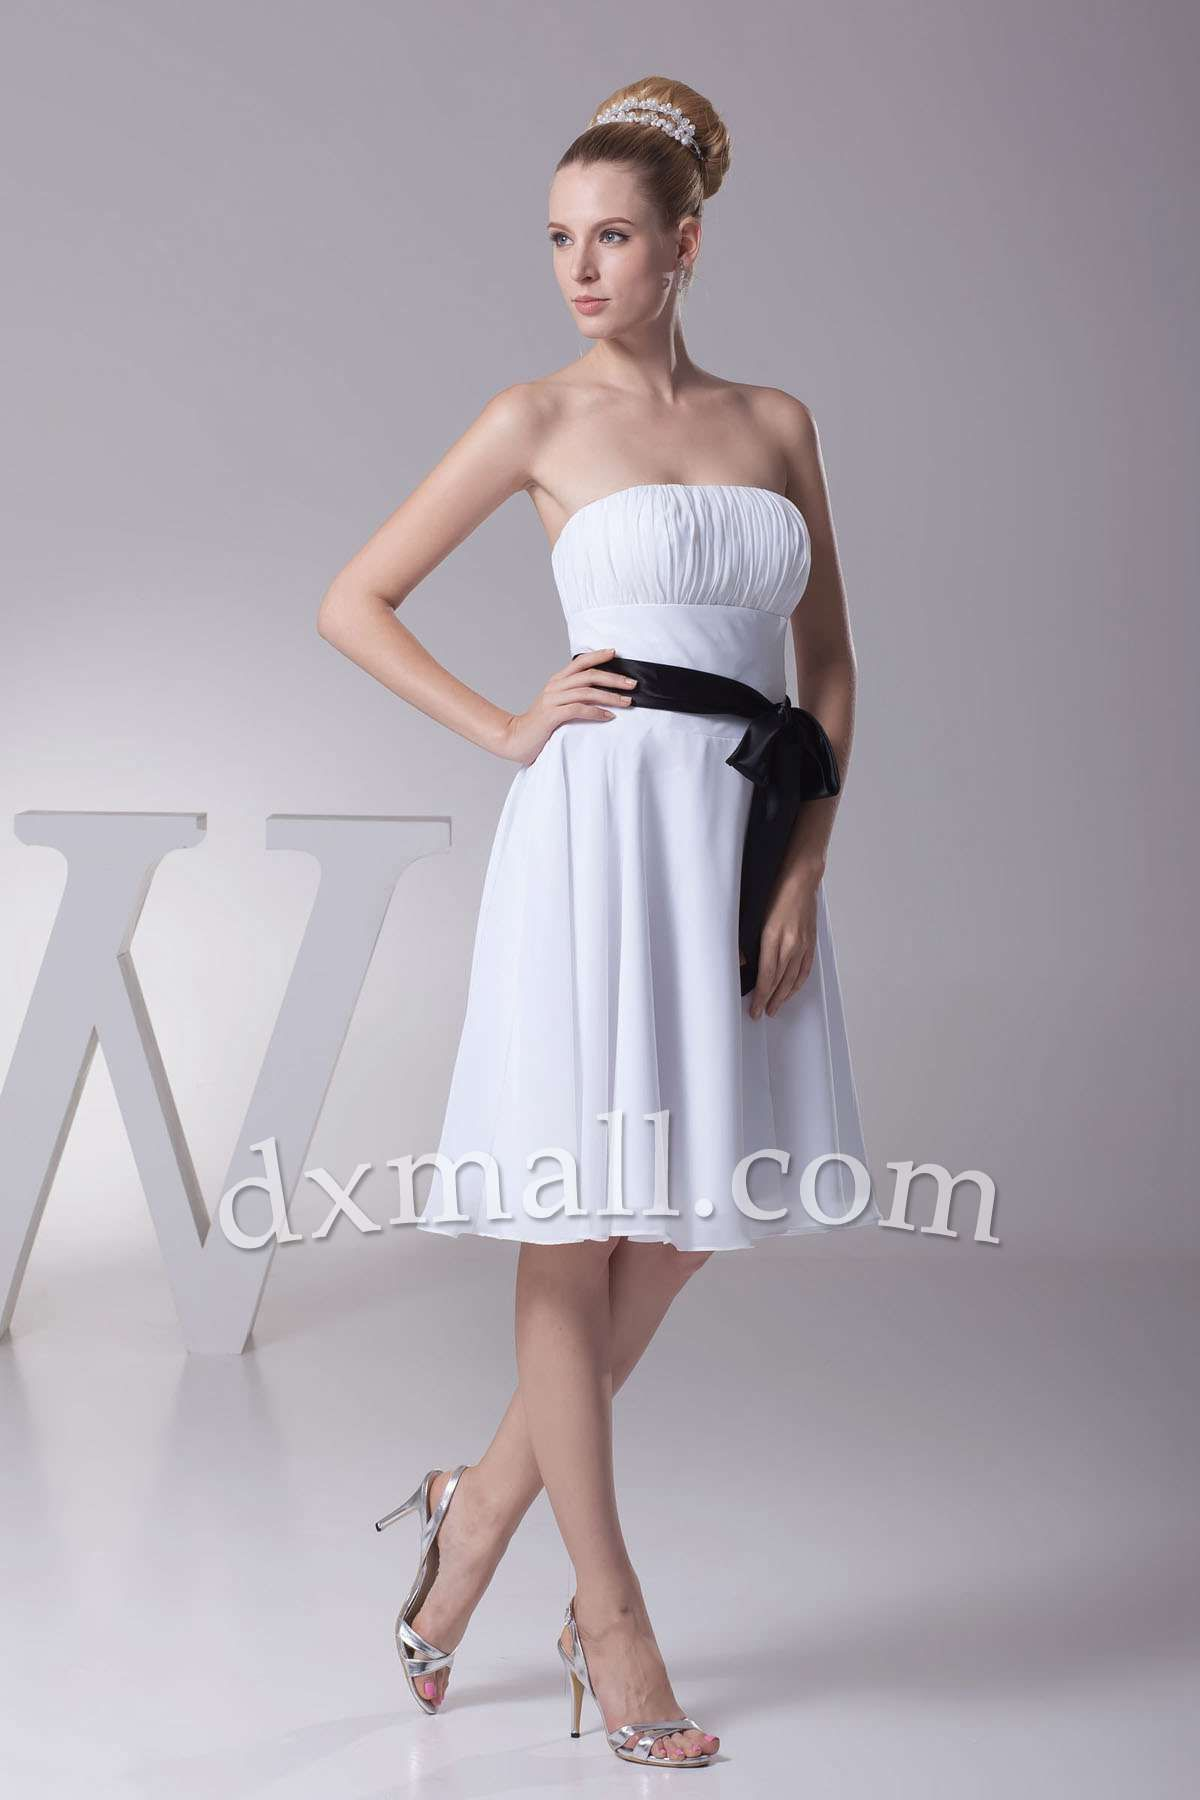 Empire winter formal dresses strapless shortmini chiffon satin